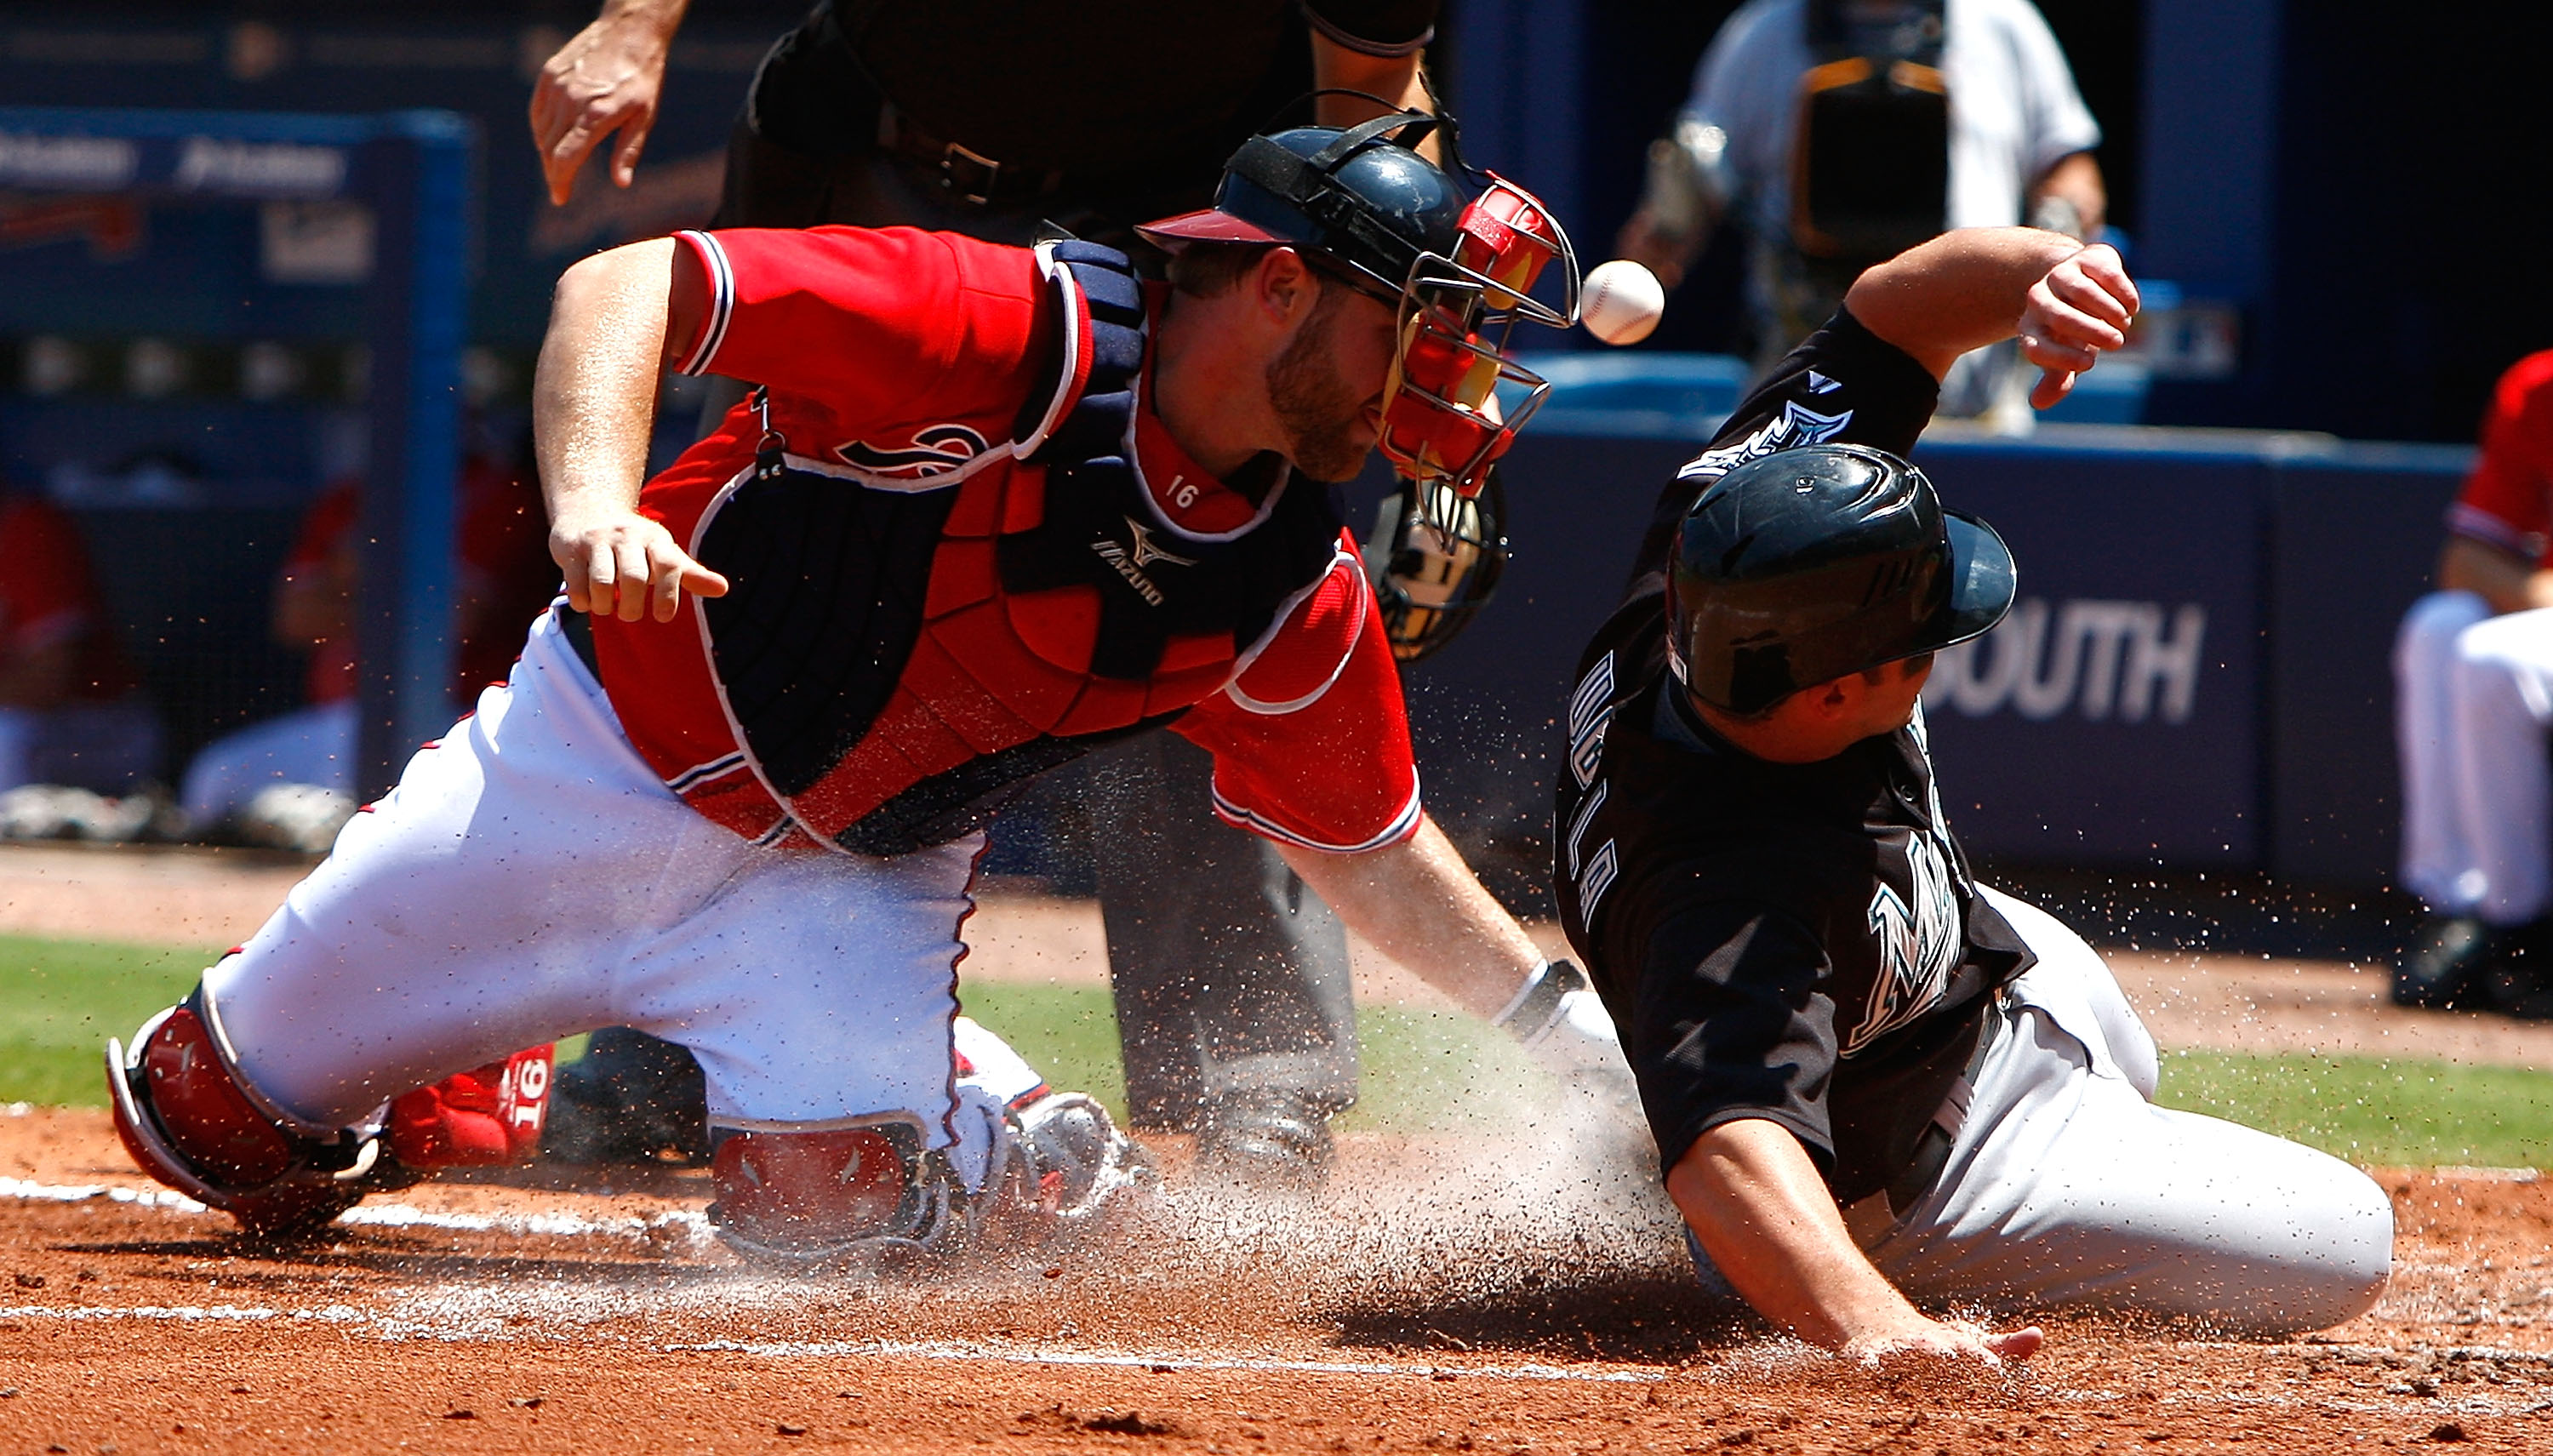 ATLANTA - AUGUST 23:  Catcher Brian McCann #16 of the Atlanta Braves loses the ball as Dan Uggla #6 of the Florida Marlins slides safely across homeplate on August 23, 2009 at Turner Field in Atlanta, Georgia.  (Photo by Kevin C. Cox/Getty Images)